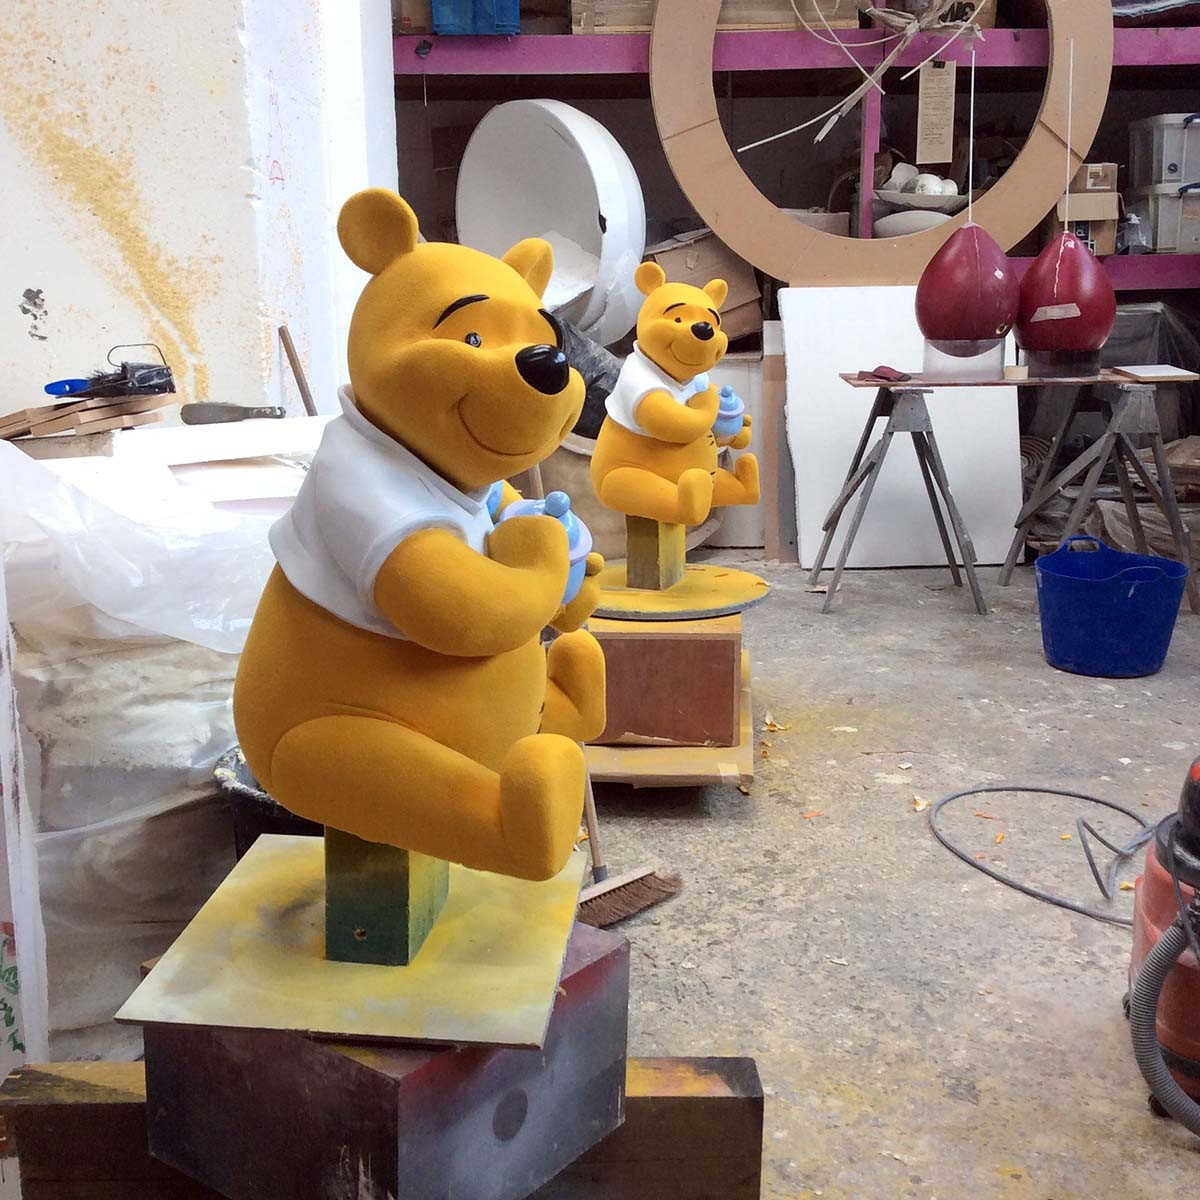 Winnie the Pooh at 100 acre wood